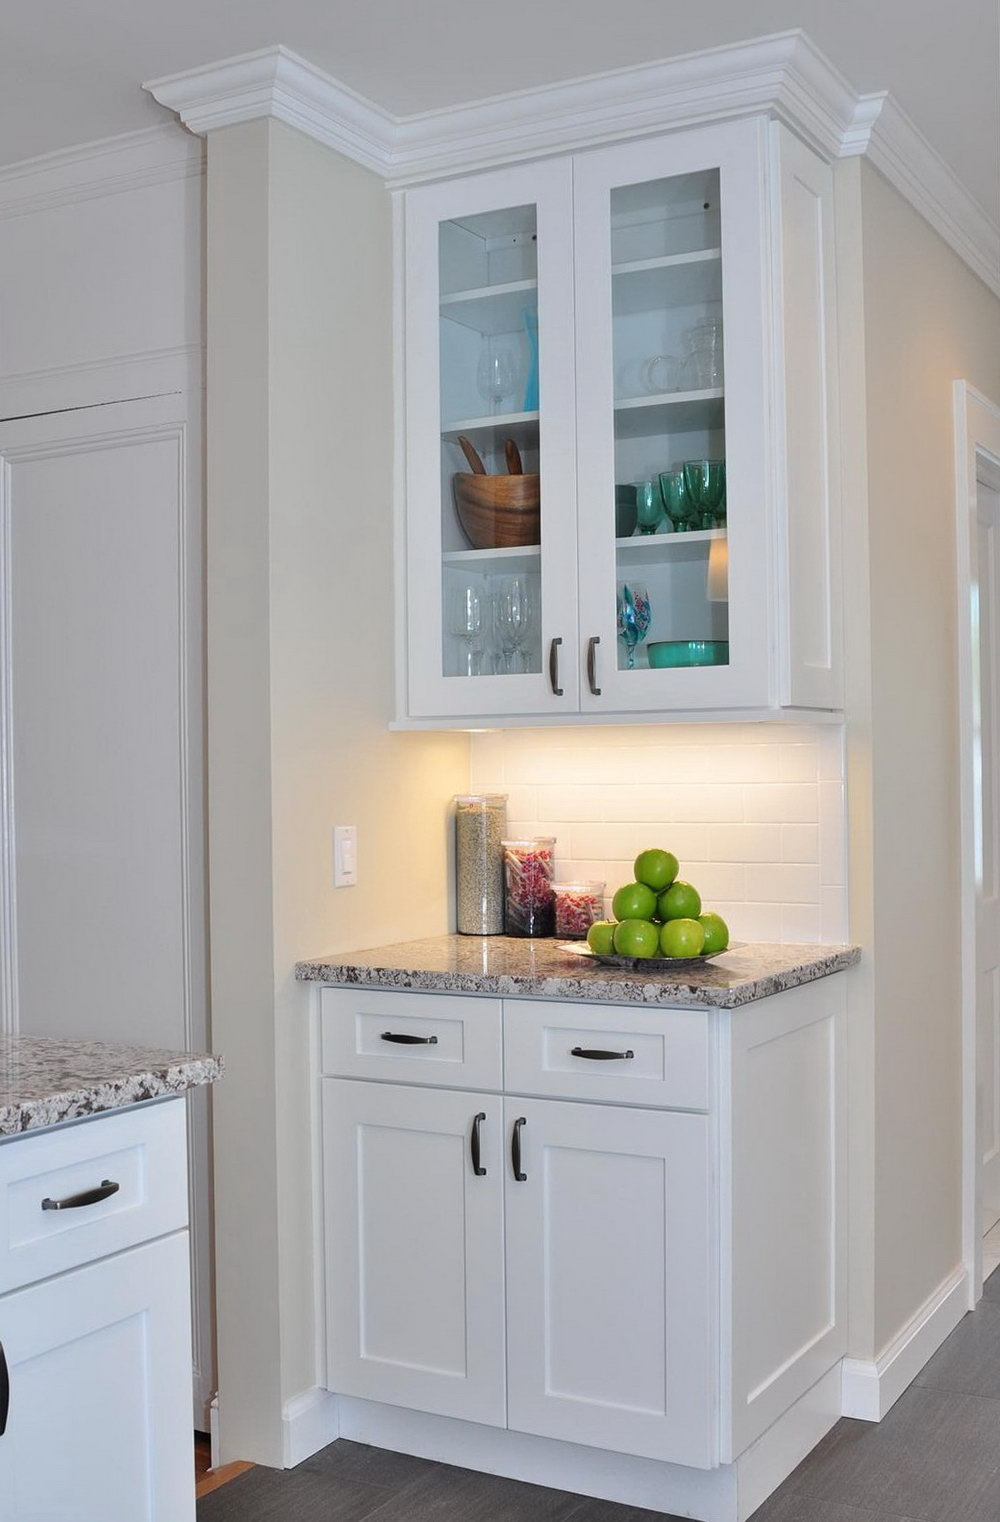 Kitchen Cabinet Hardware For Shaker Cabinets